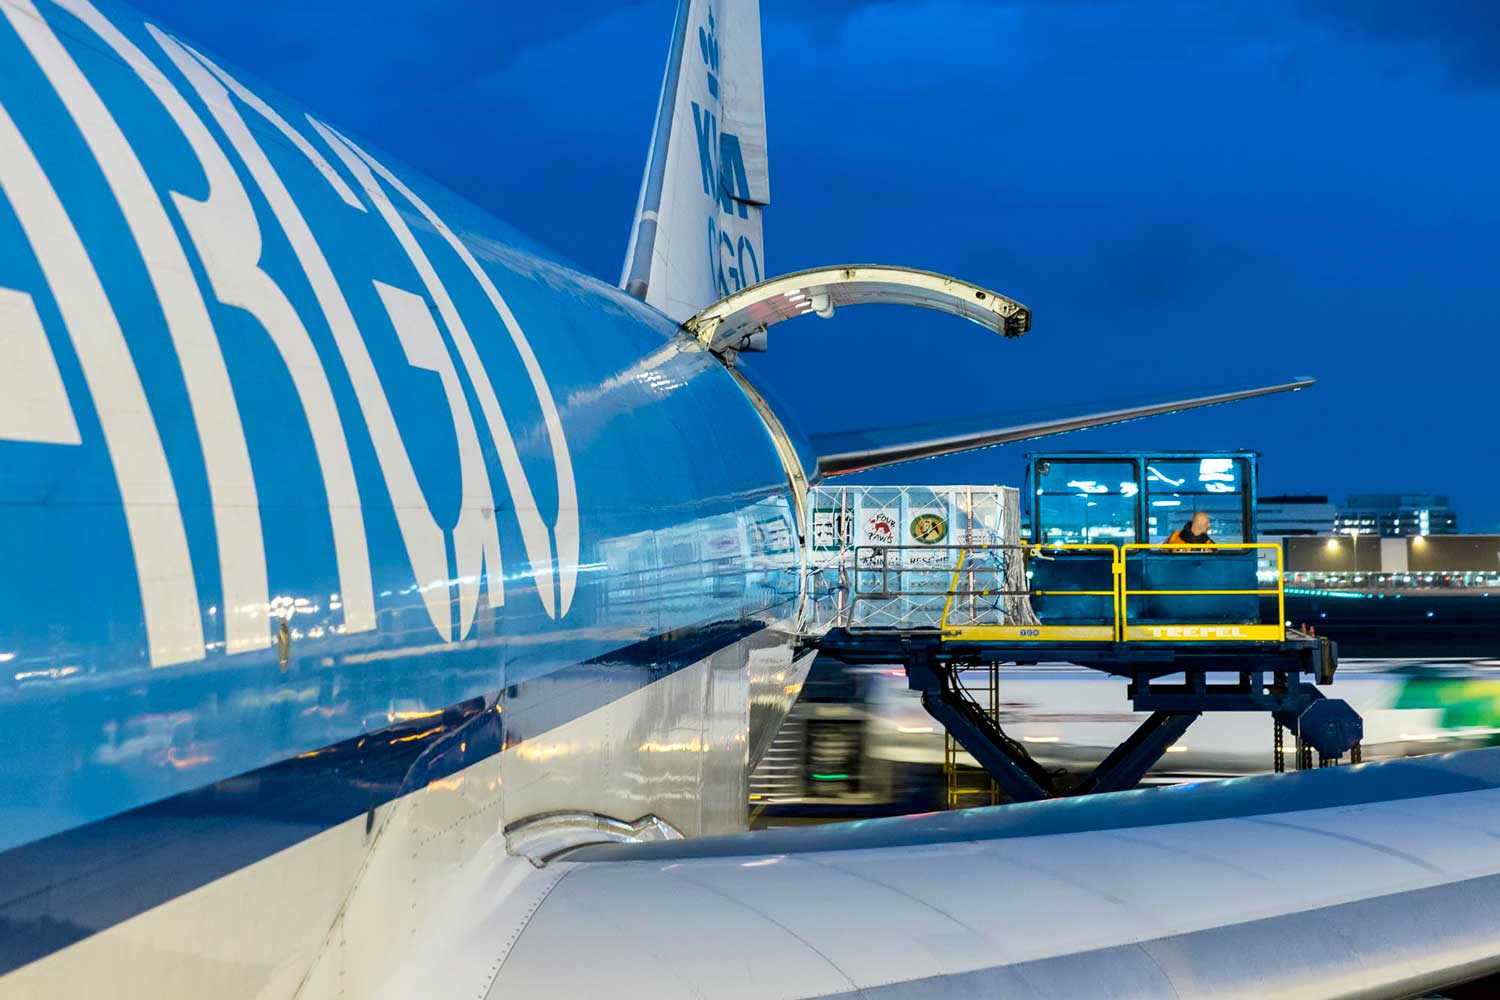 Active tracking devices ok'd on Air France KLM Martinair Cargo flights